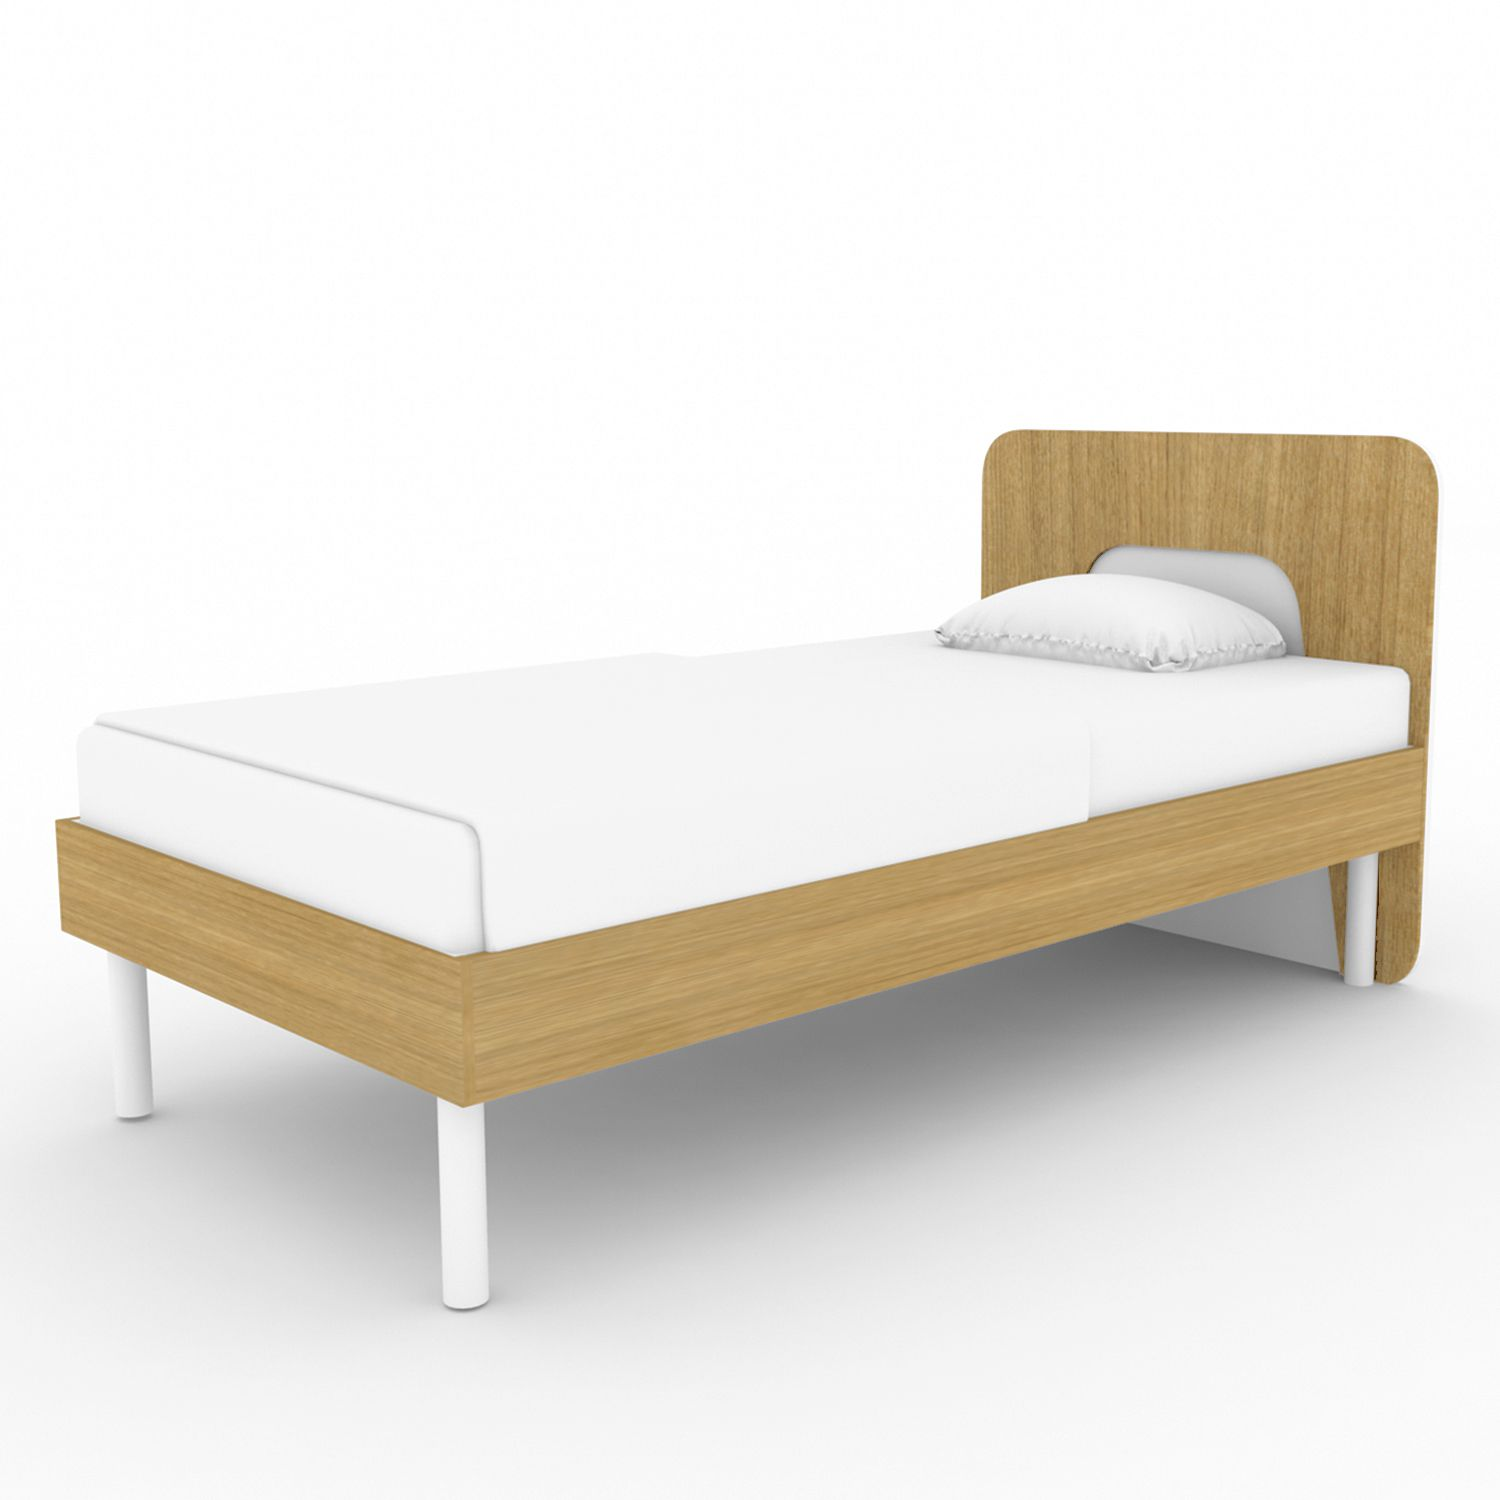 Single Bed Price Unicos Triumph Kids Single Bed Available At Snapdeal For